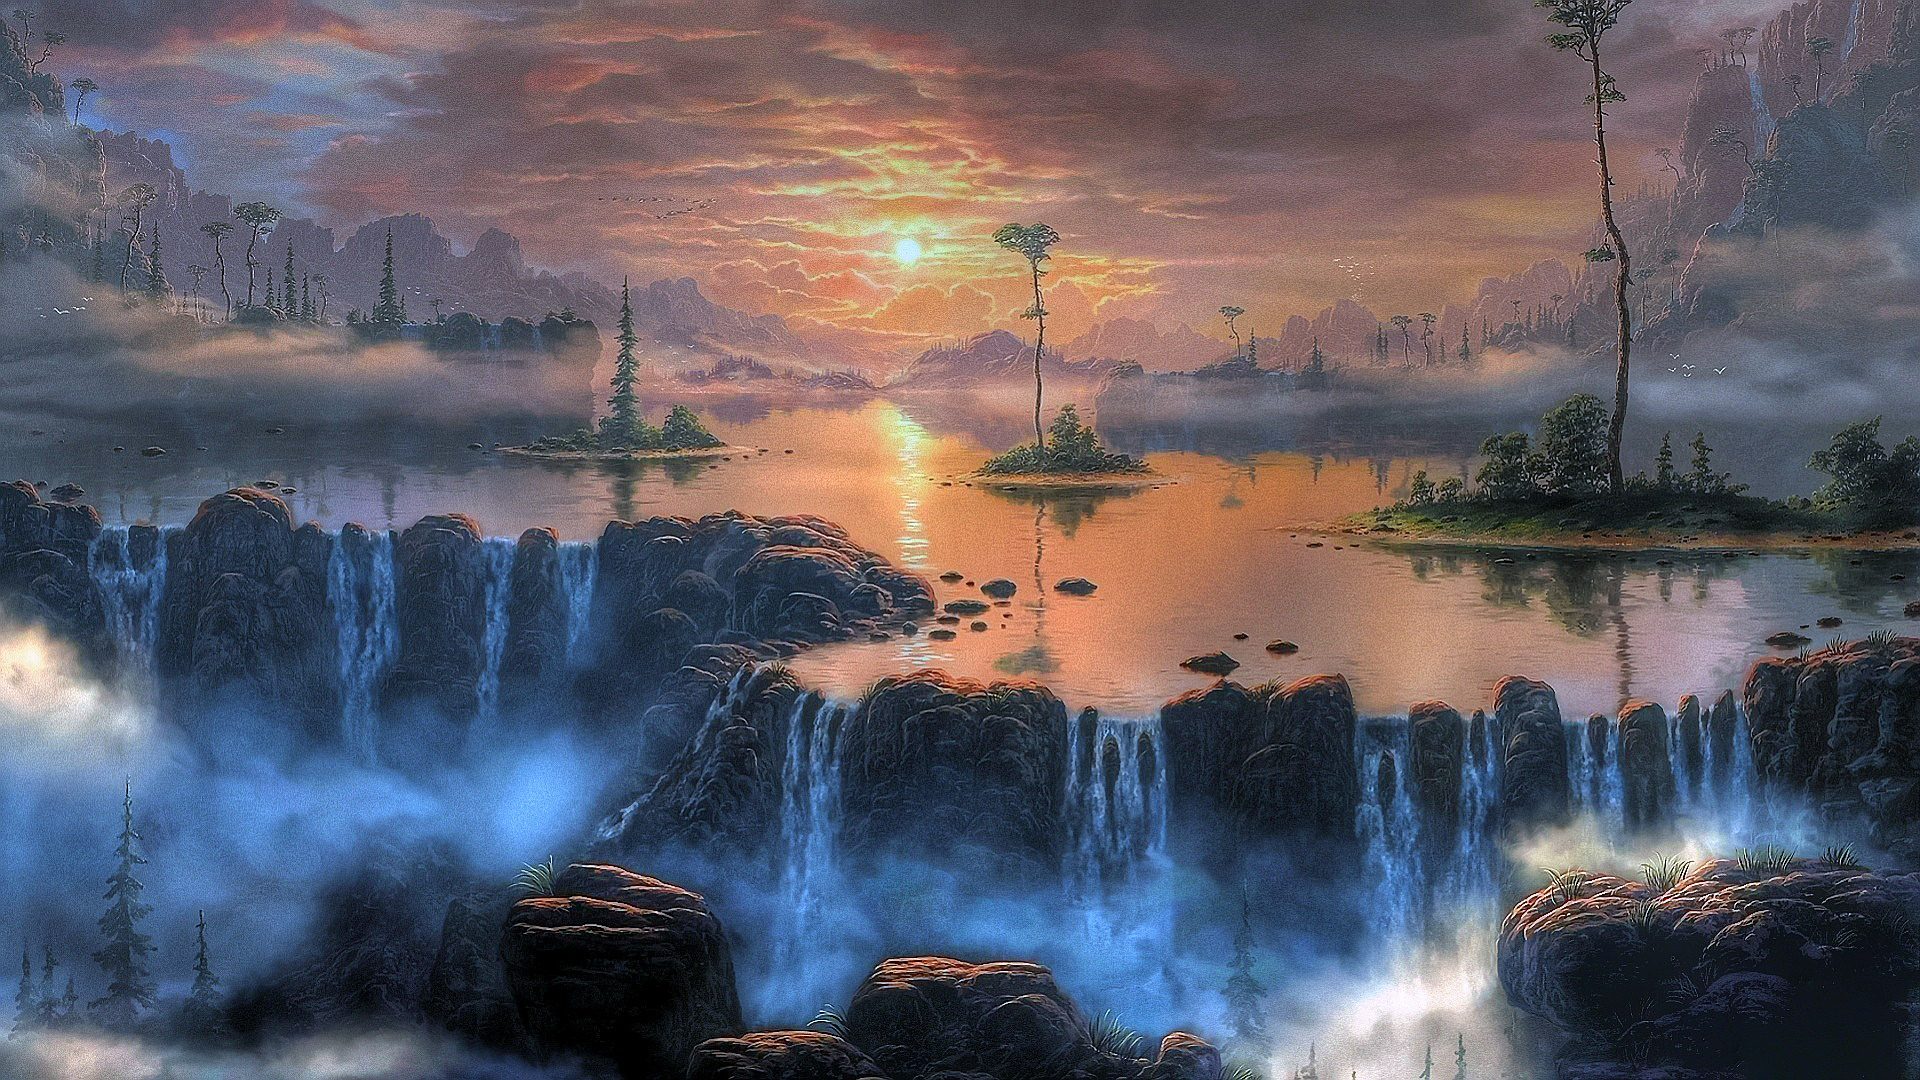 nature-digital-painting-36251.jpg